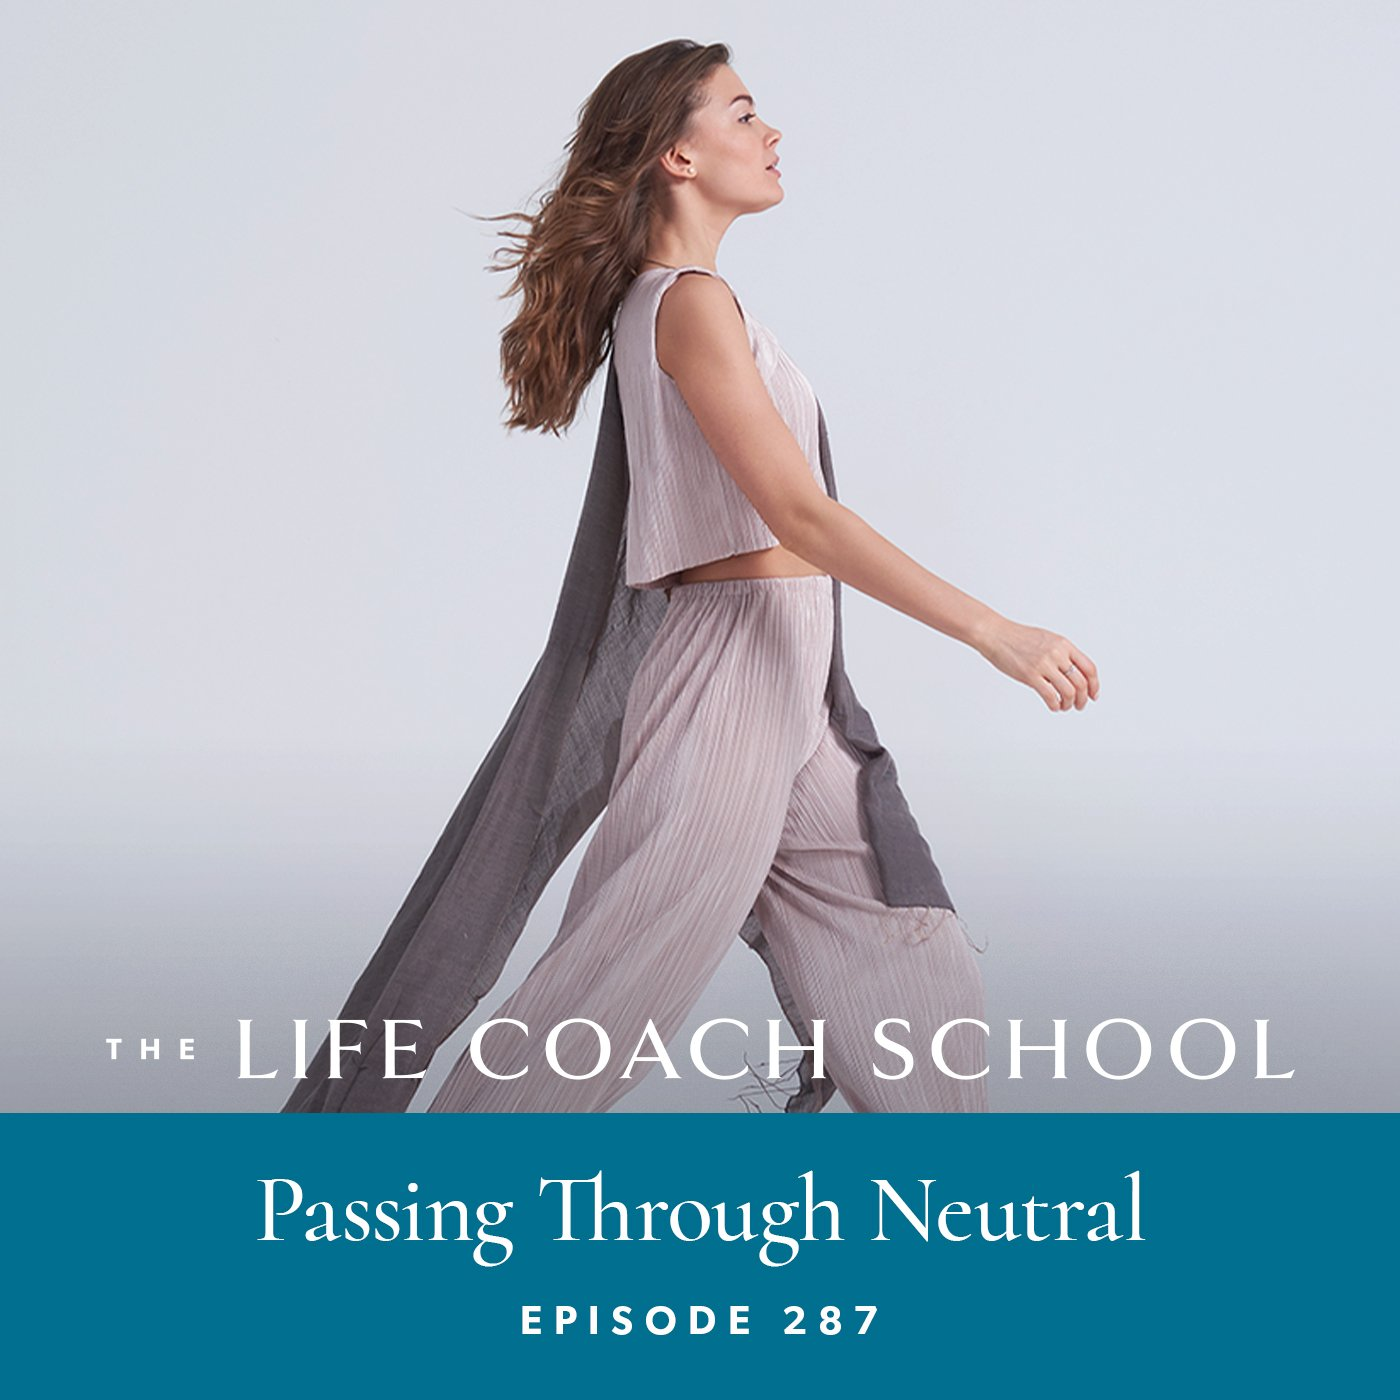 The Life Coach School Podcast with Brooke Castillo | Episode 287 | Passing Through Neutral